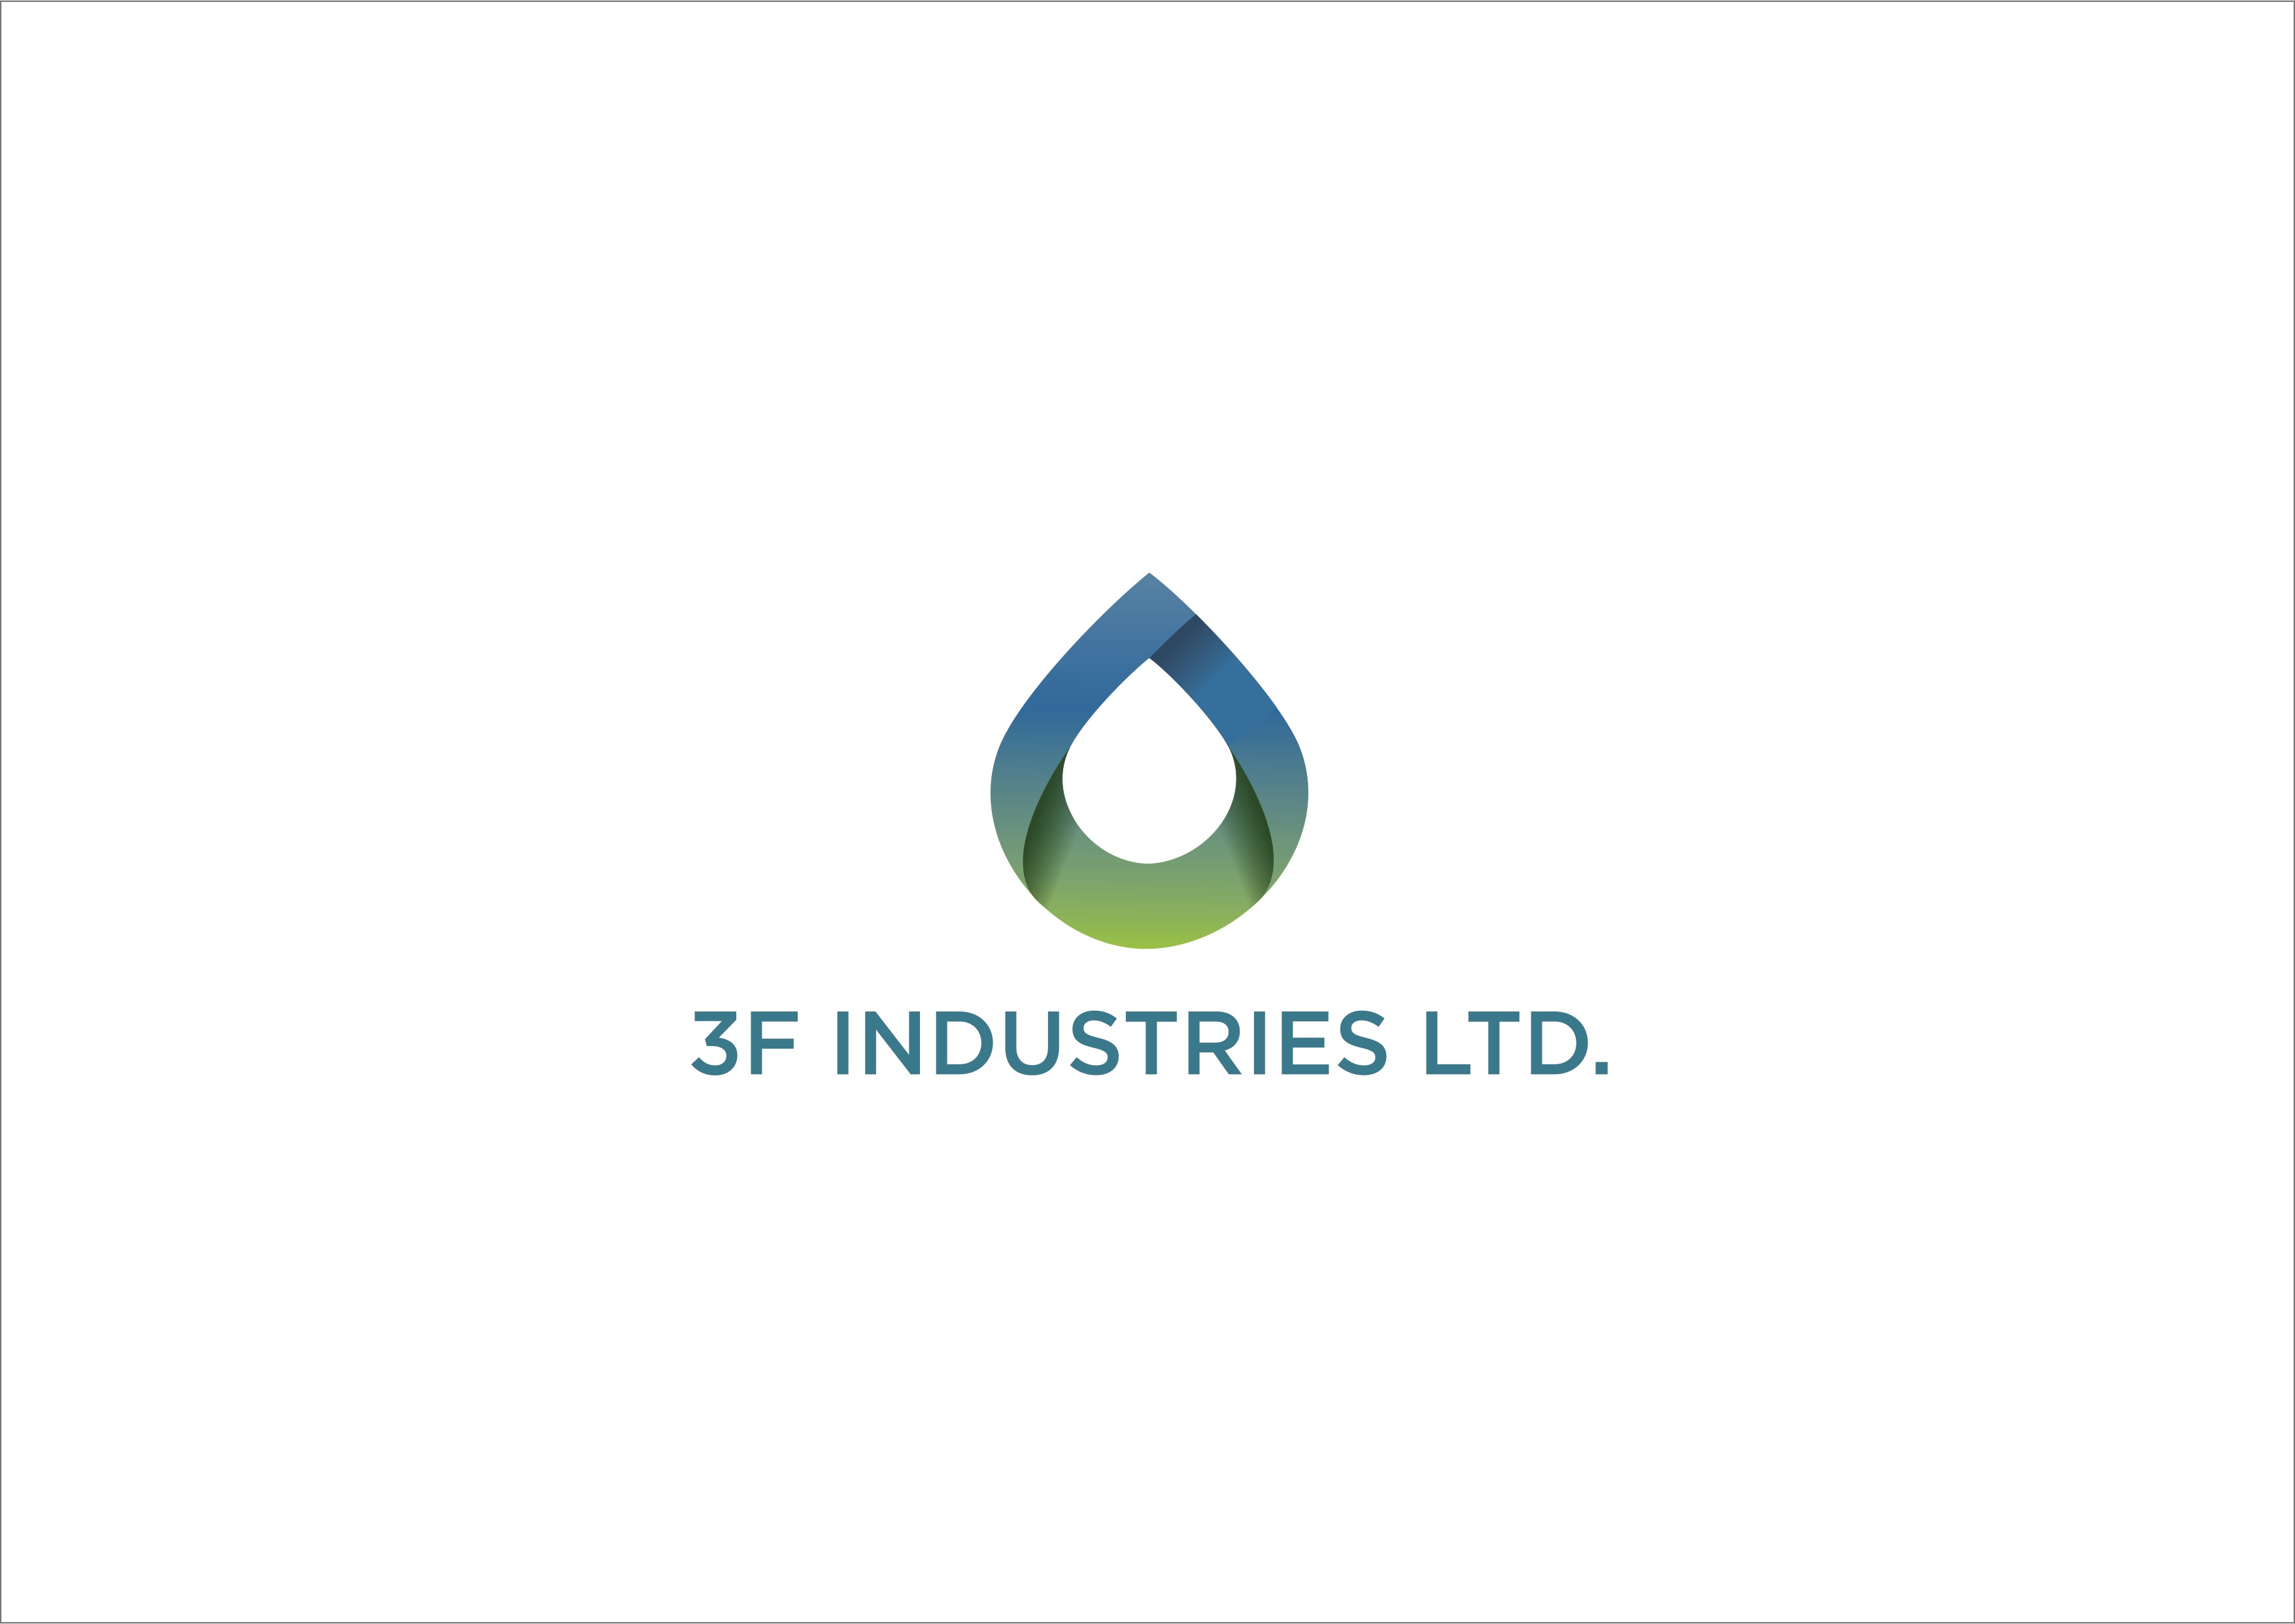 3F Industries Limited